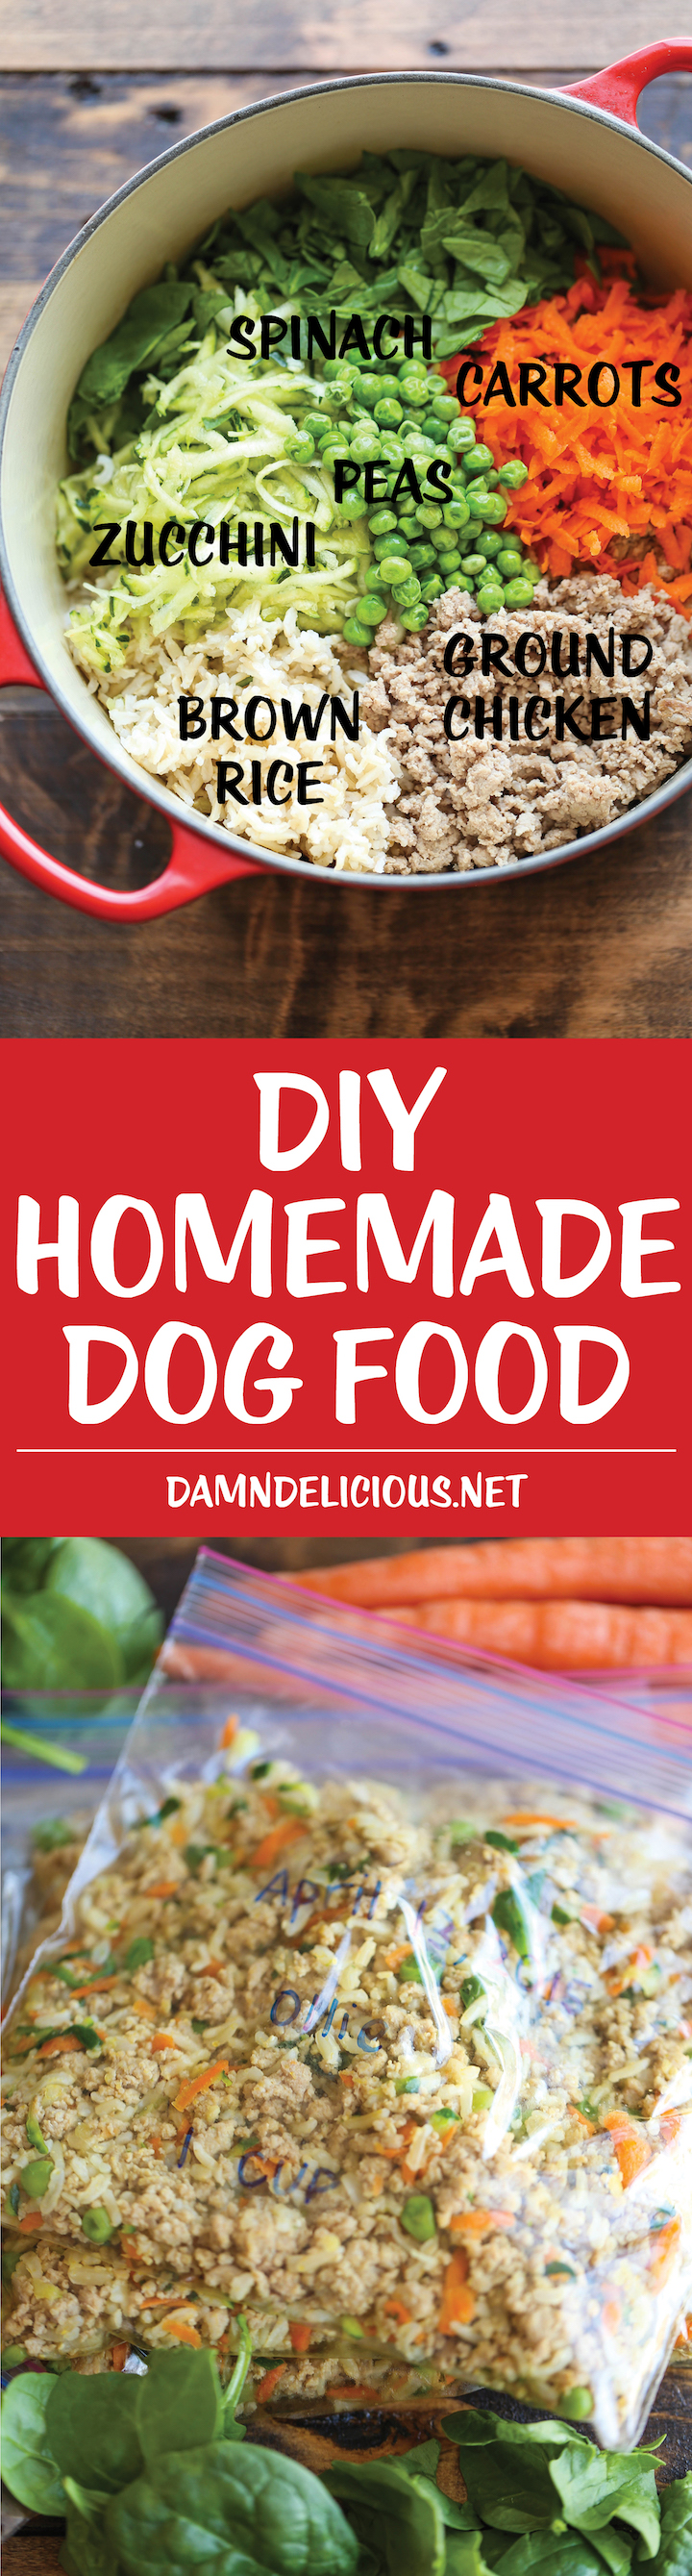 DIY Homemade Dog Food Recipe